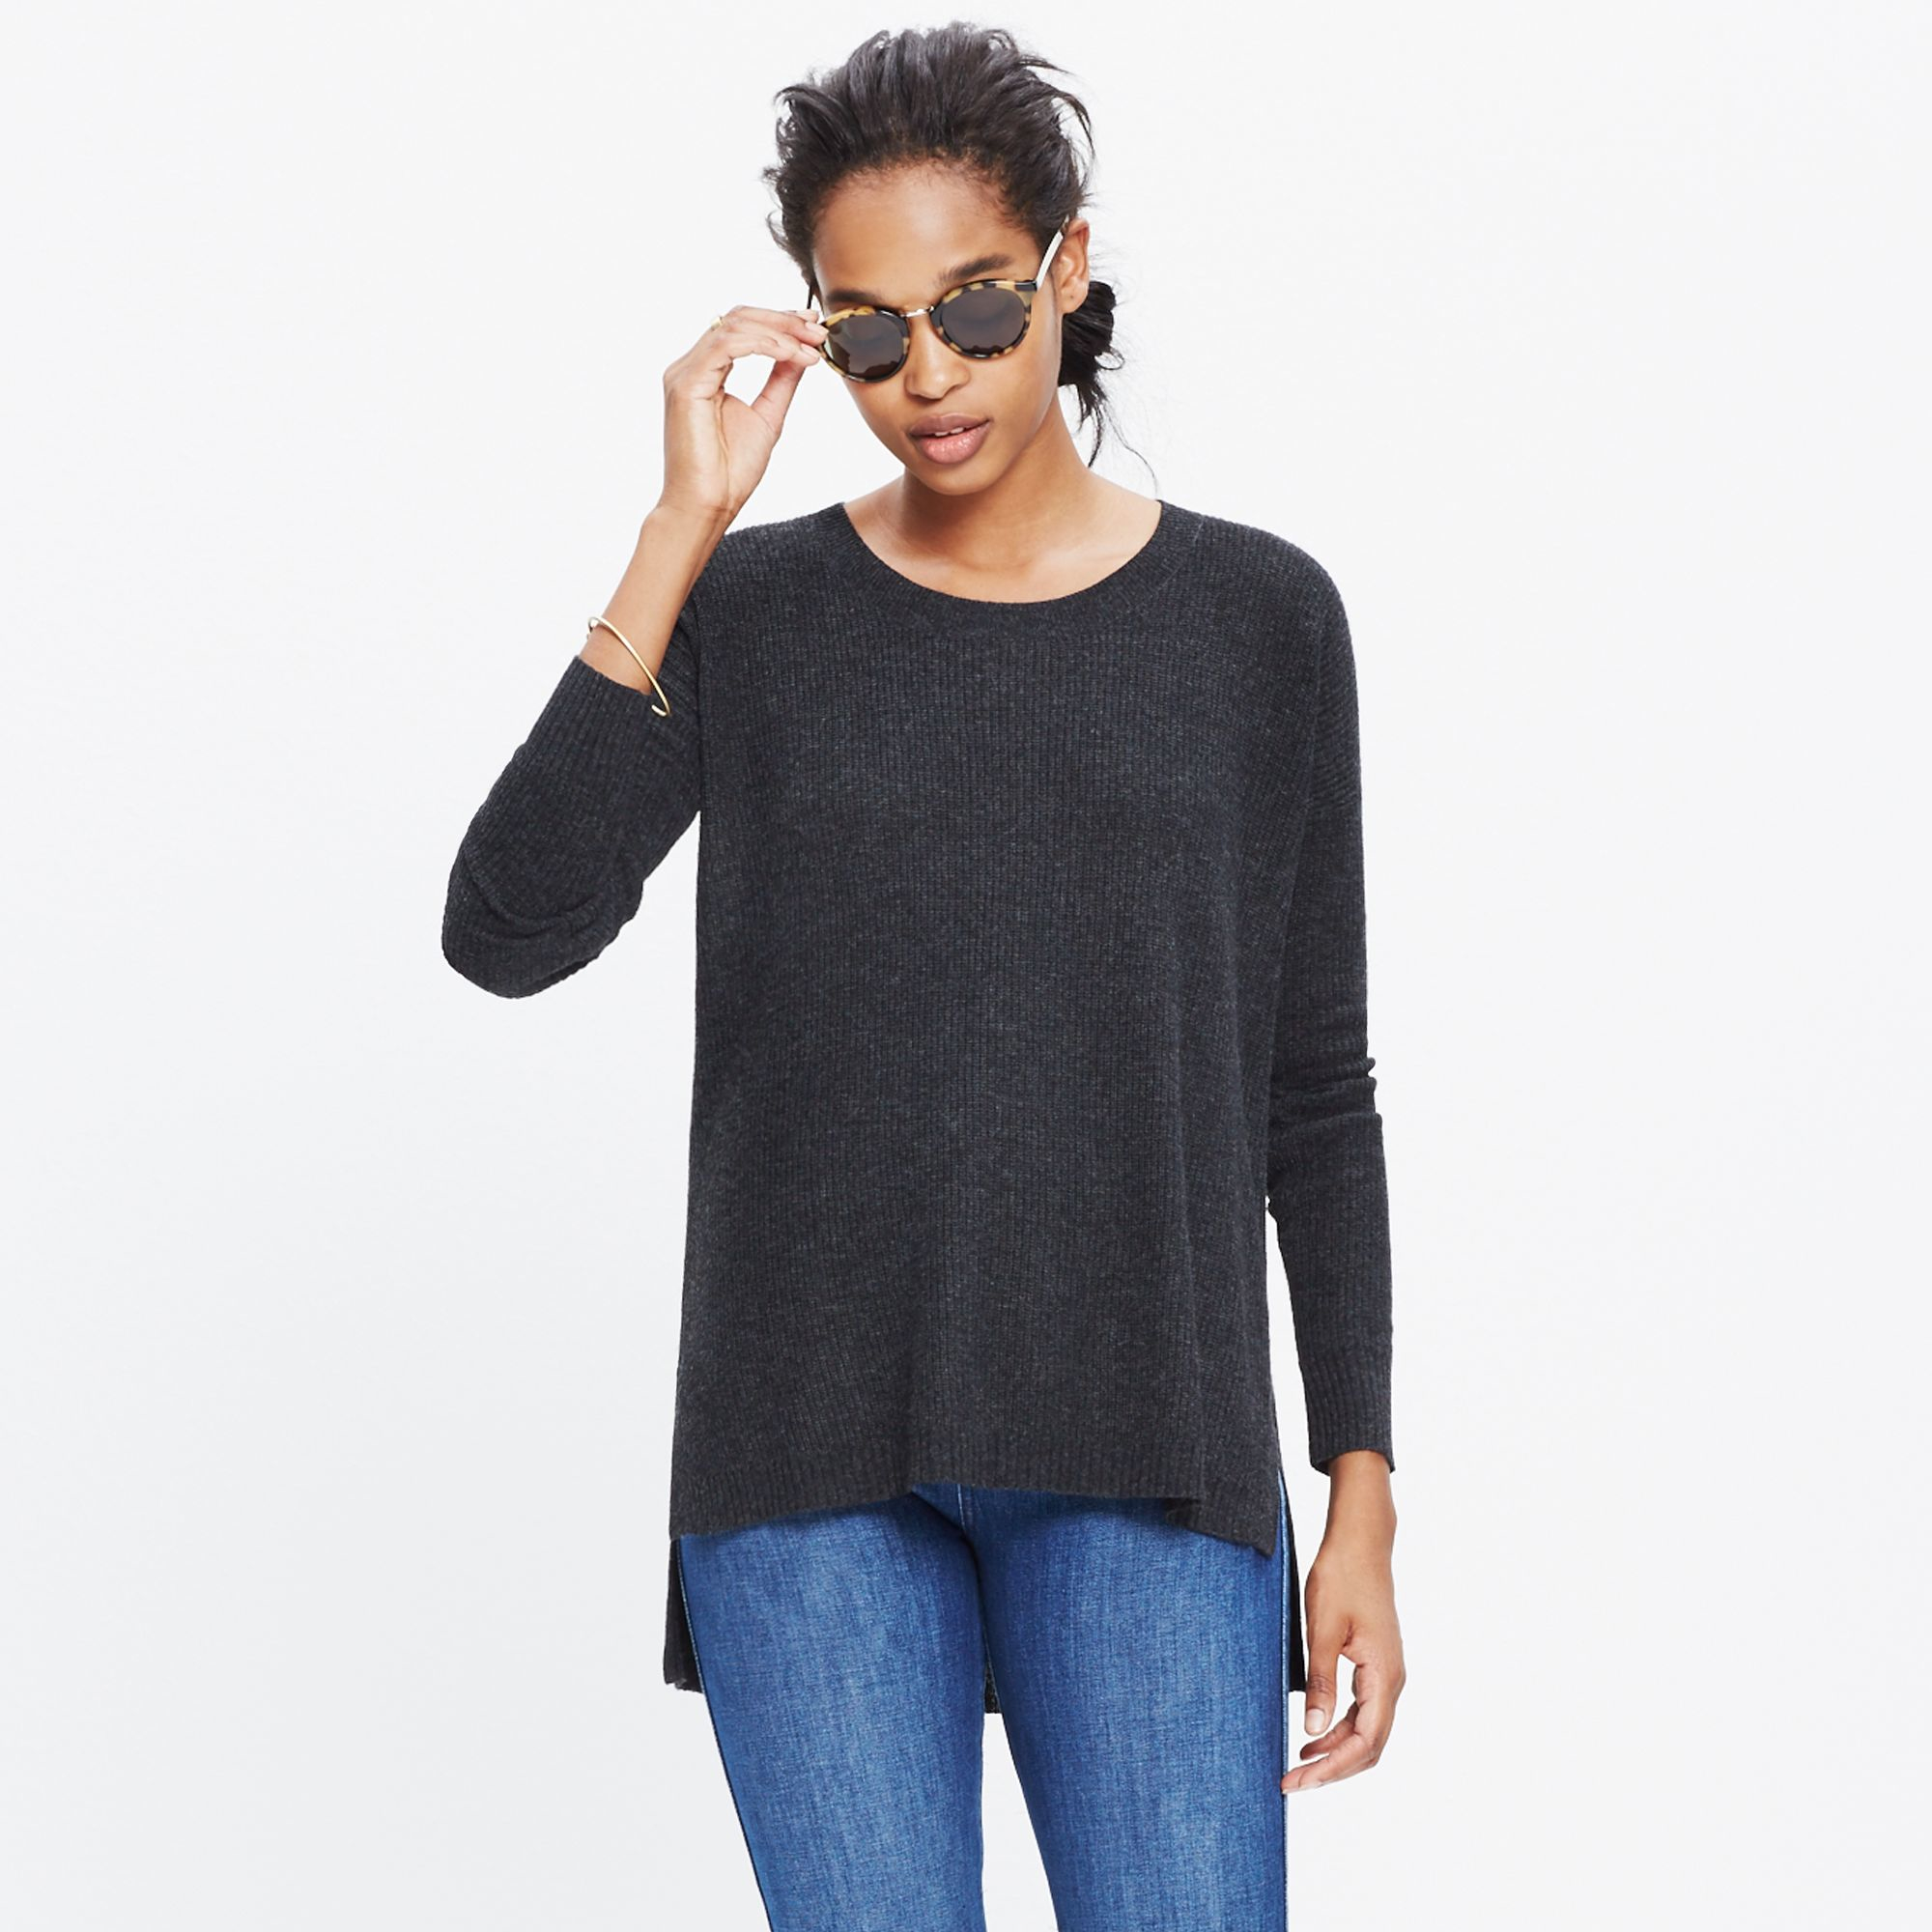 Madewell Warmlight Pullover Sweater in Black | Lyst